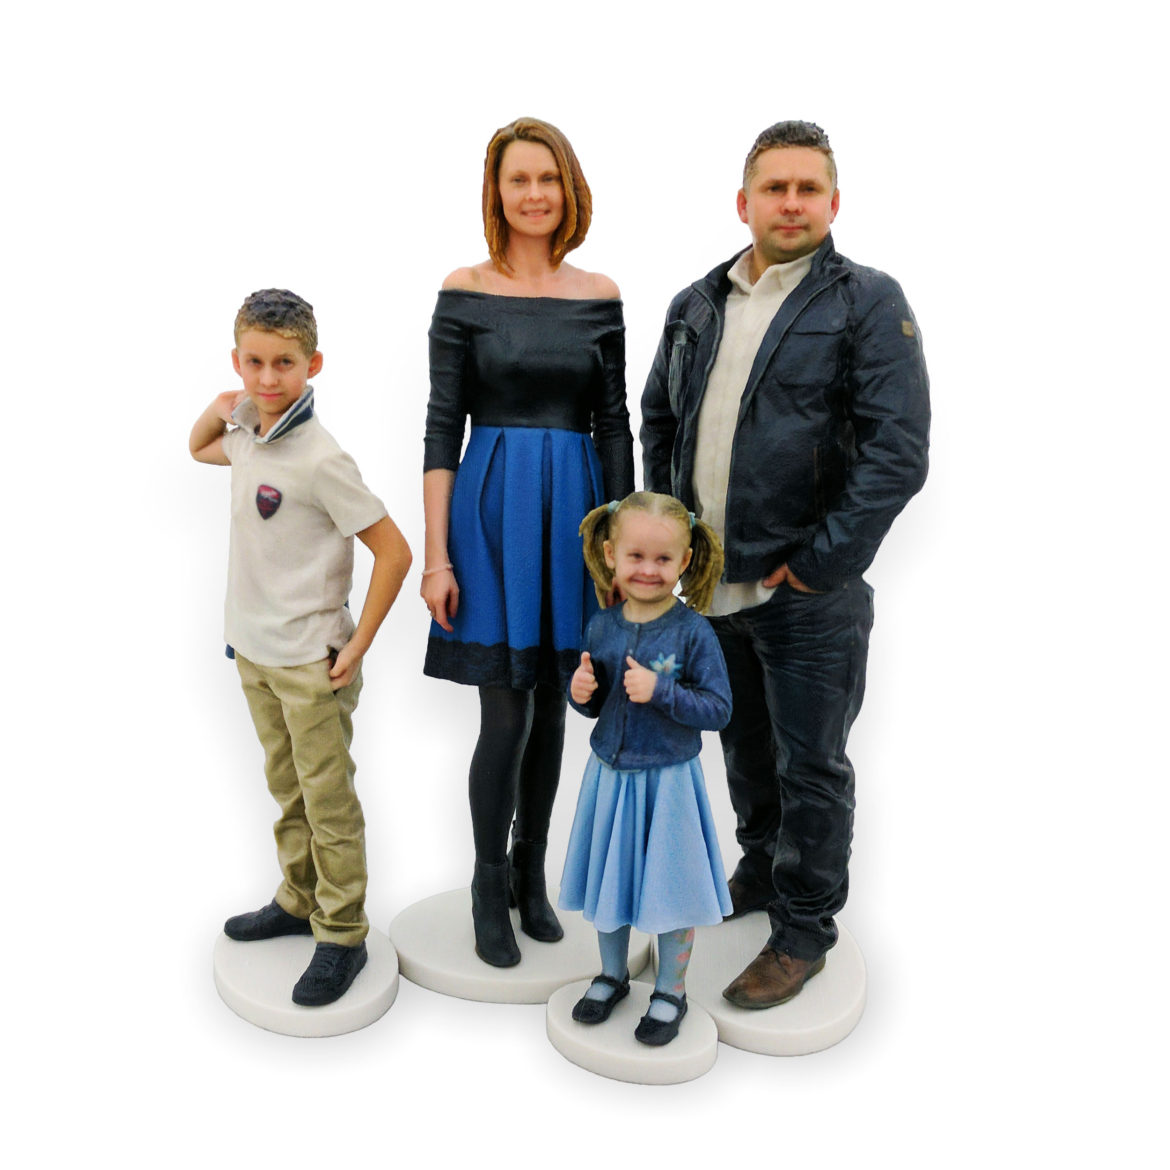 my3Dtwin, Four 3D Printed Figurines of Family